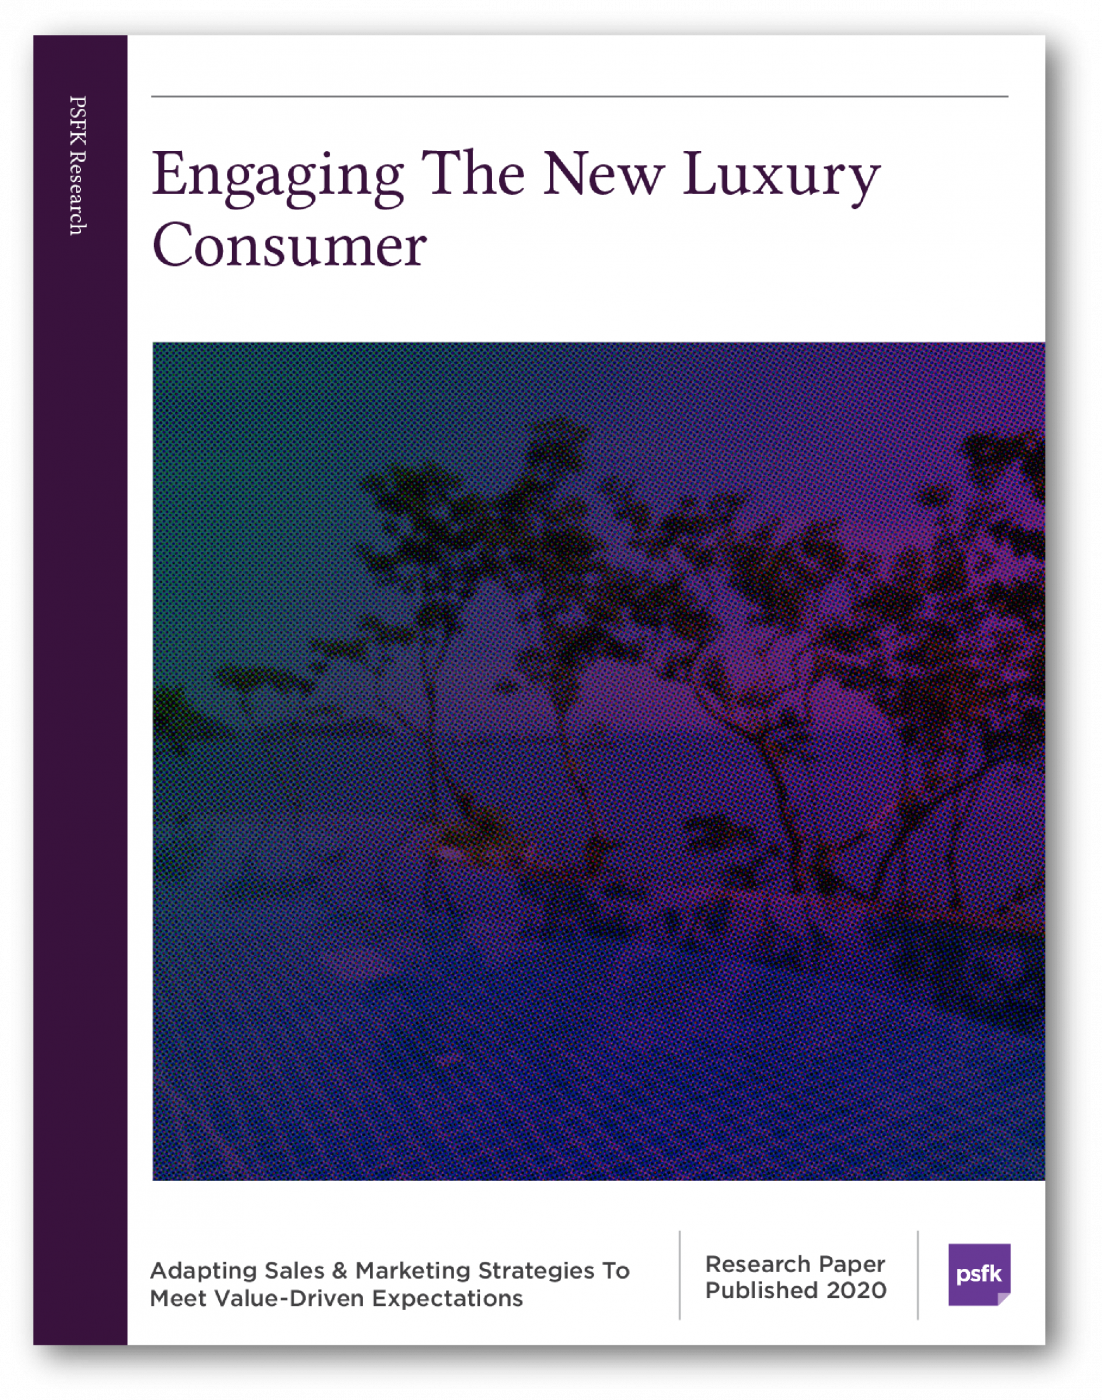 Engaging The New Luxury Consumer